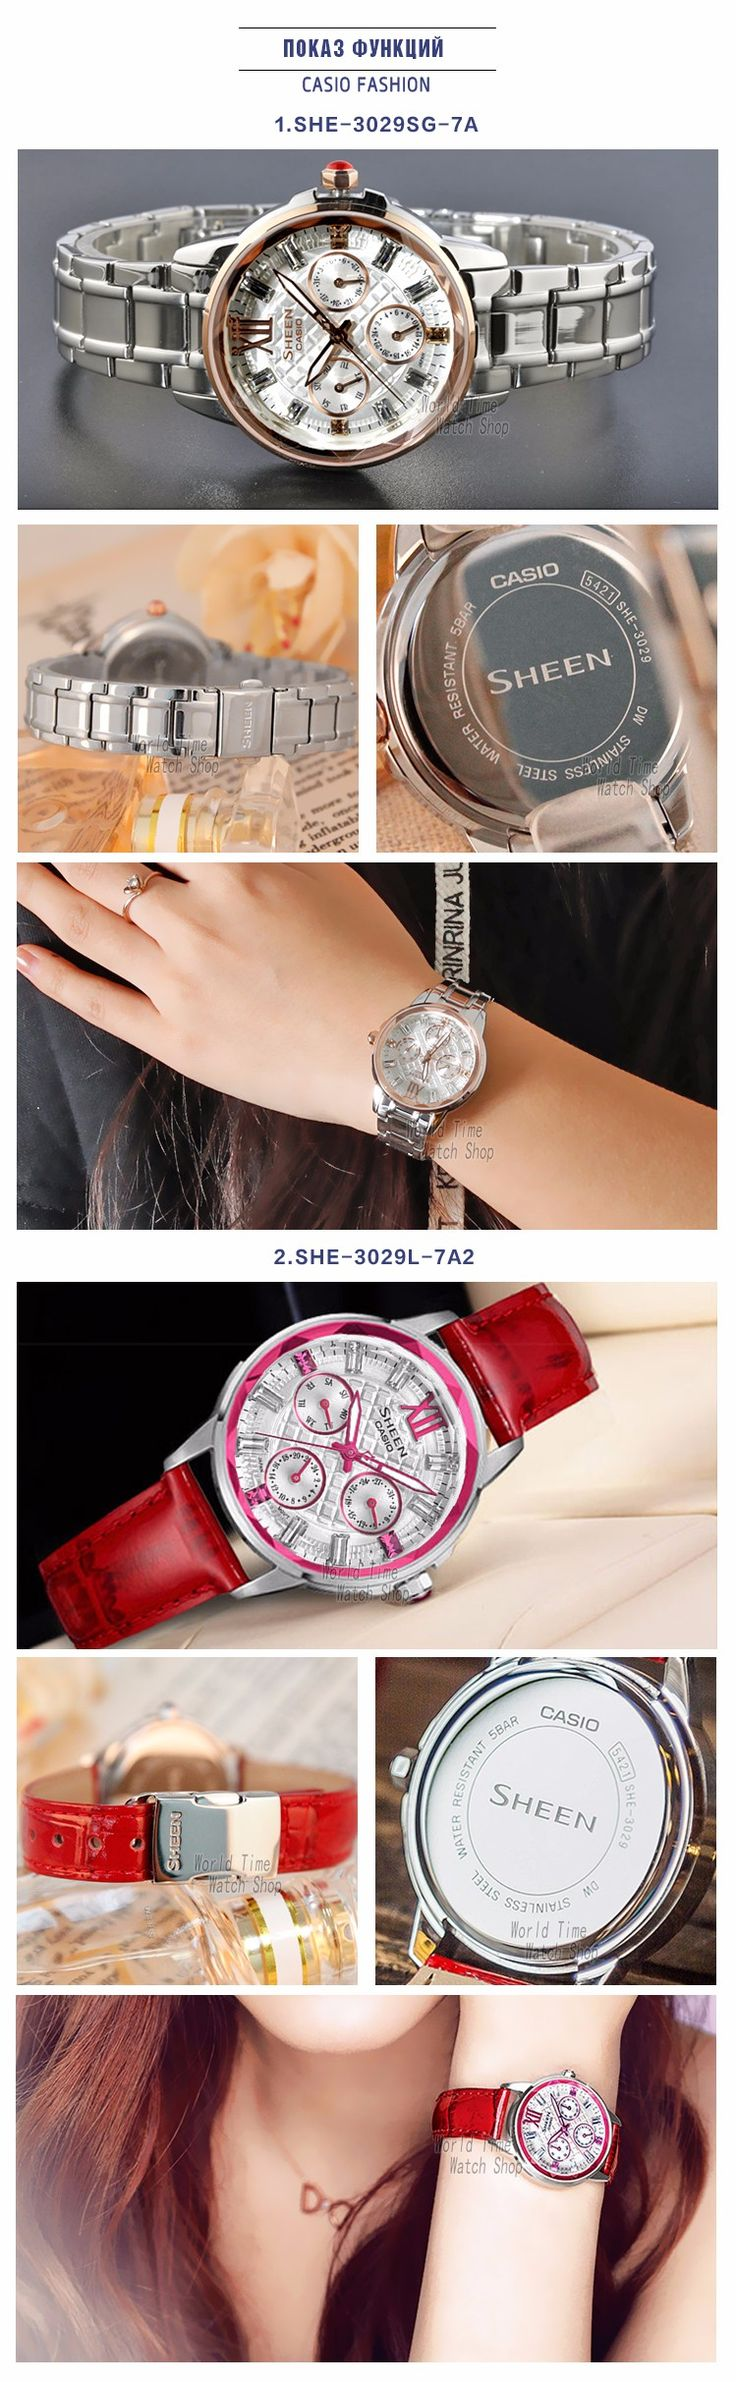 Women's watch CASIO (best selling) Previous price: $173 Current price: $156